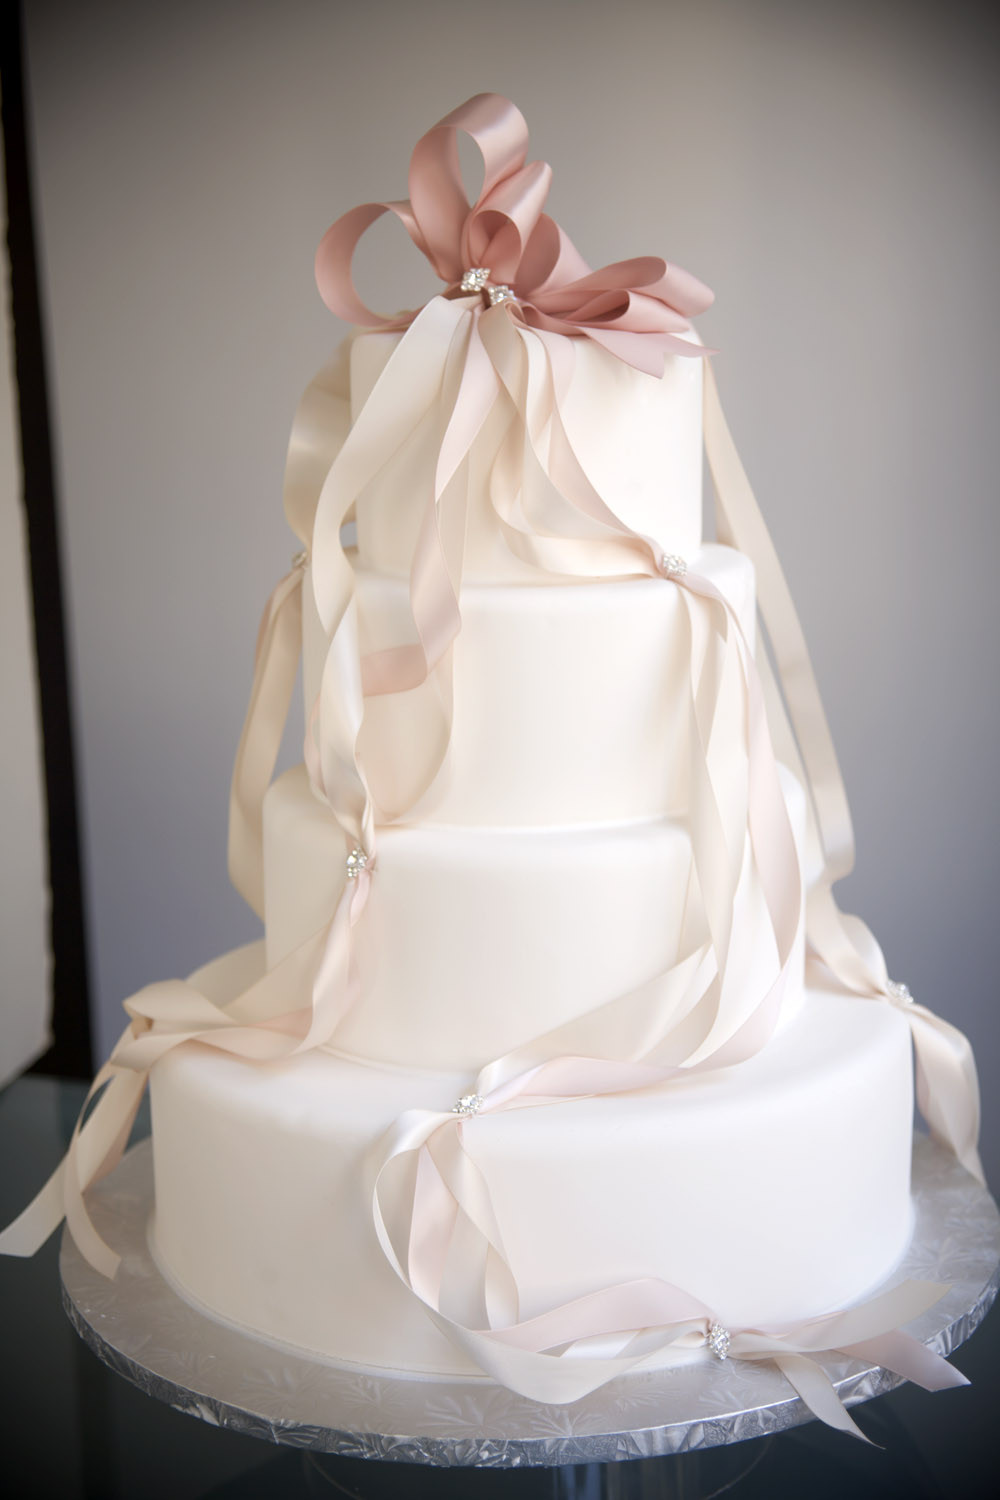 Wedding Cakes With Ribbon  A Simple Cake Crystal decorations DIY bling